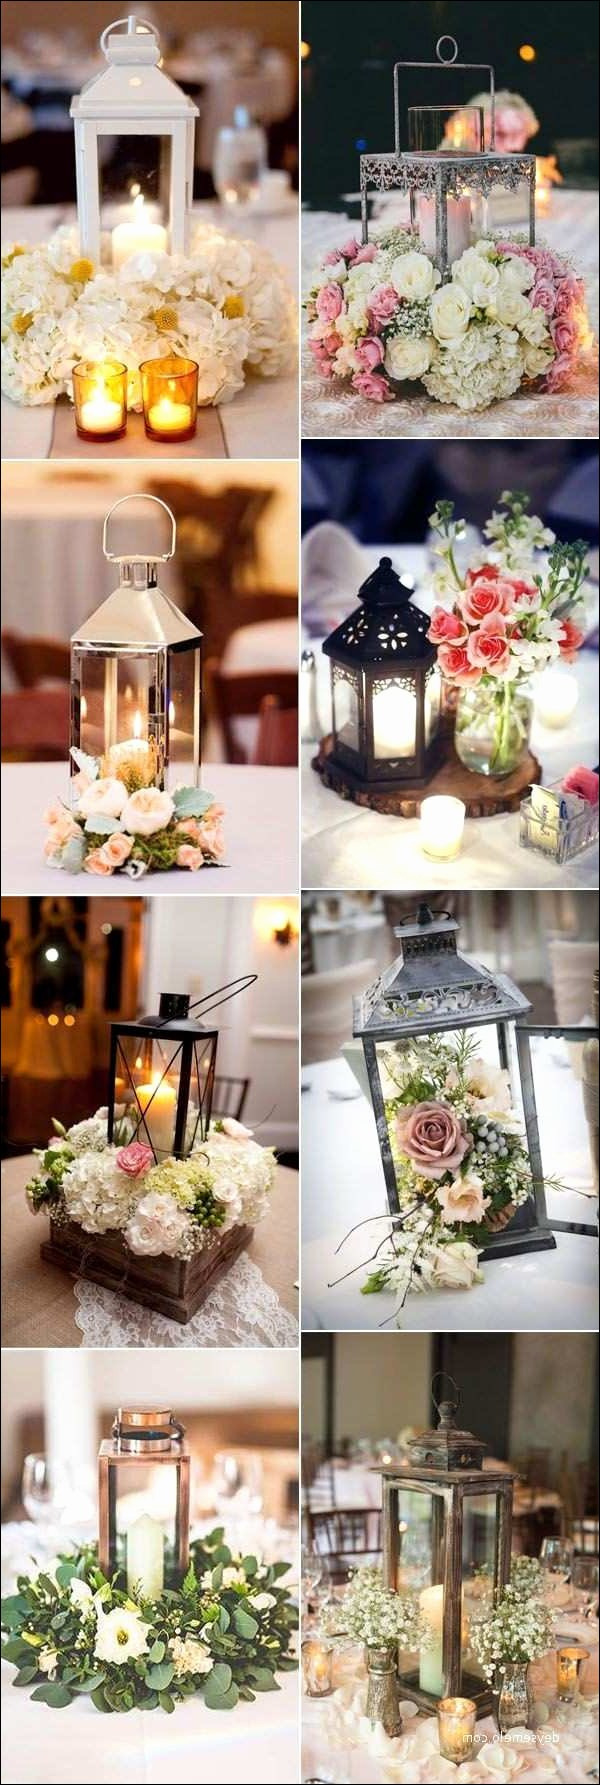 Decorative Lanterns For Weddings Lanterns For Weddings Centerpieces New Decorative Lanterns For